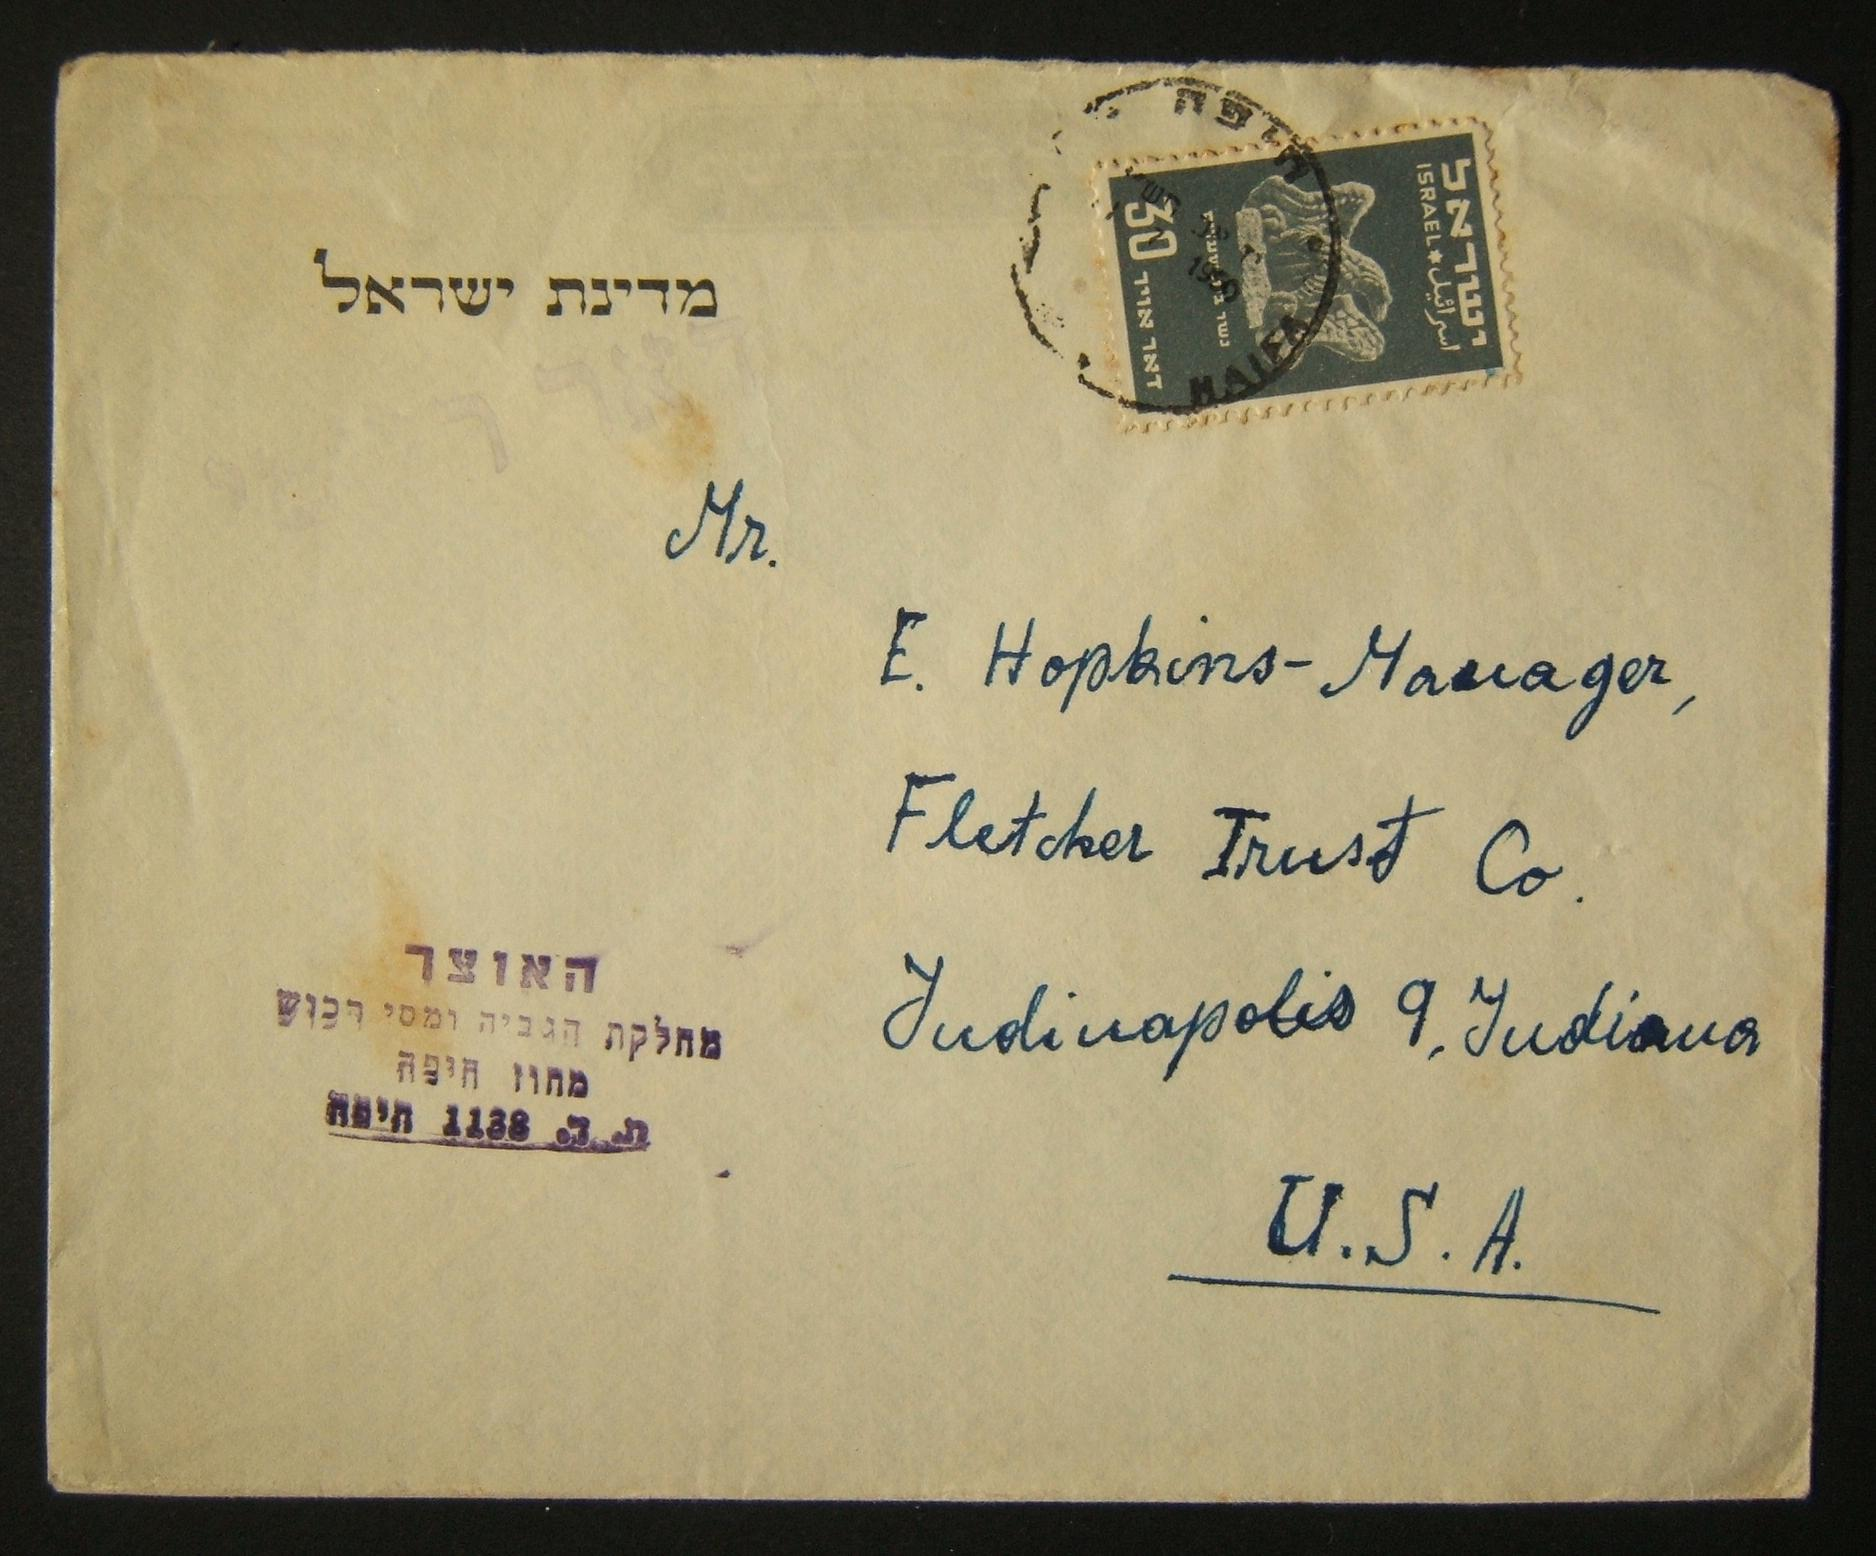 1950 1st airmail / PO's, rates & routes: 31-7-1951 government stationary surface mailed cover ex department of collections and property tax HAIFA to USA franked 30pr at the SU-2 pe